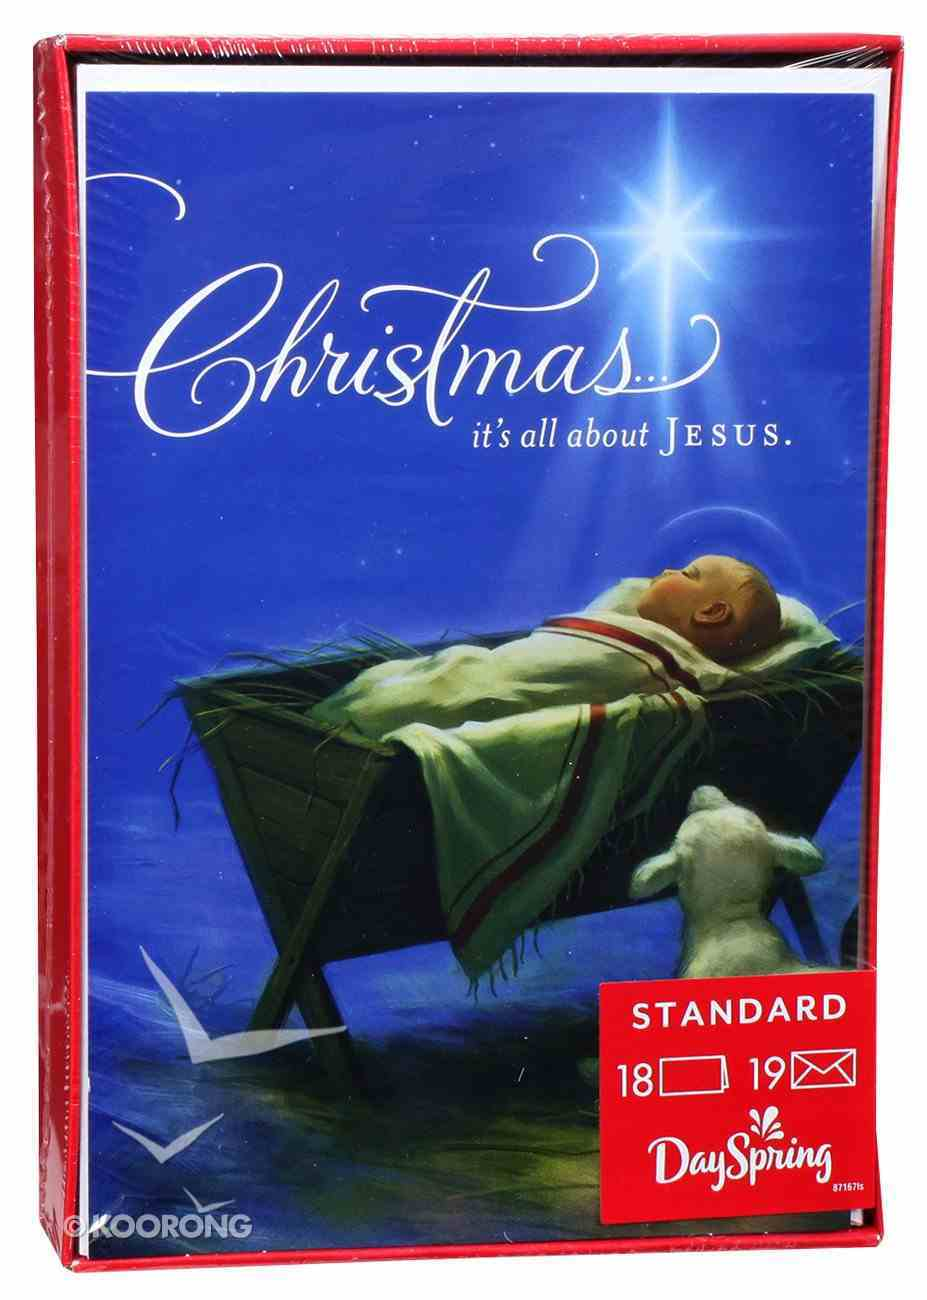 Christmas Boxed Cards: Christmas It's All About Jesus (1 Corinthians 16:23) Box